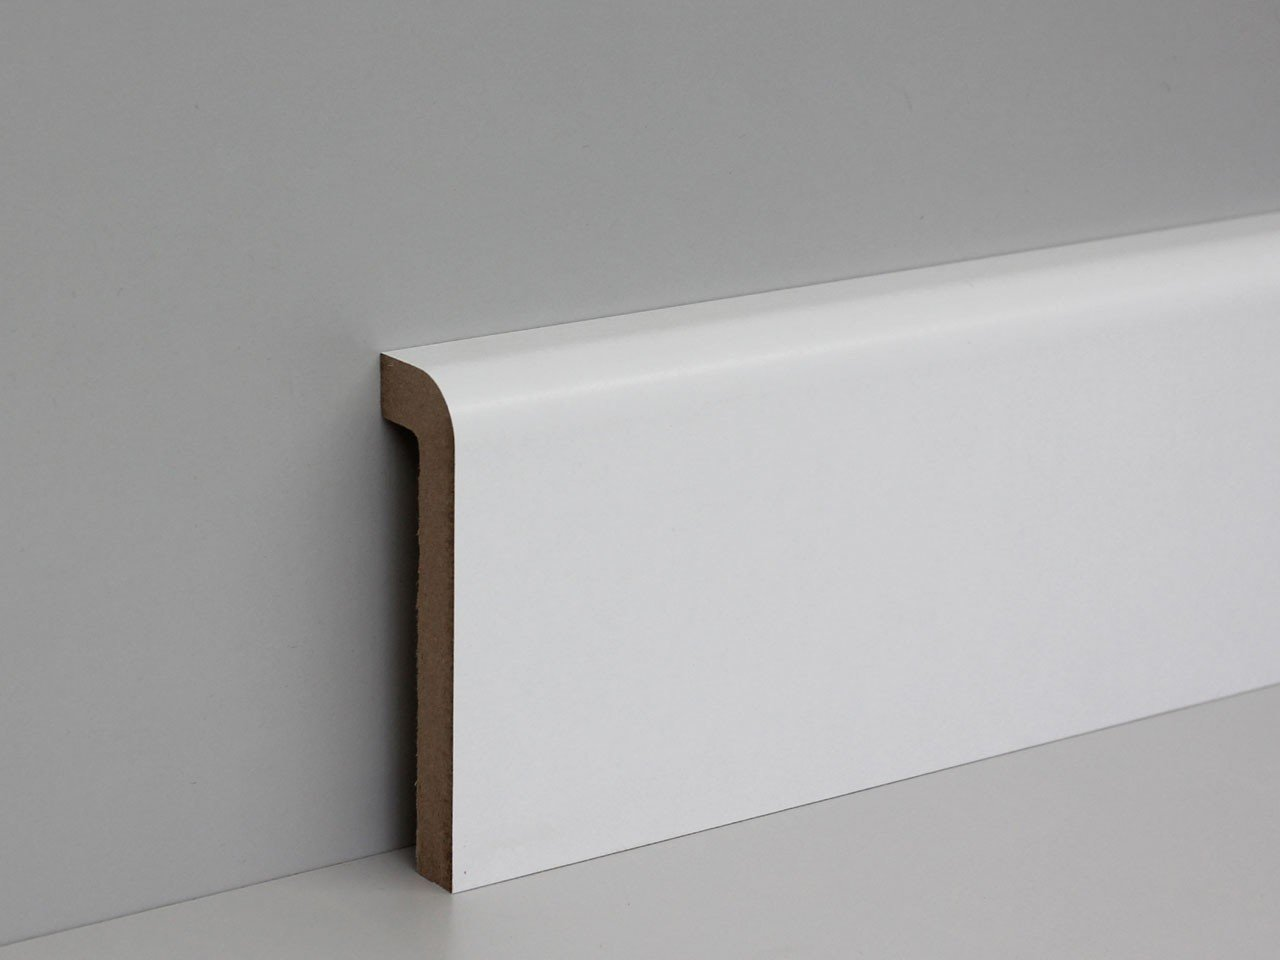 Batt coprimarmo bianco l 2 4 mdf iperceramica for Battiscopa ikea